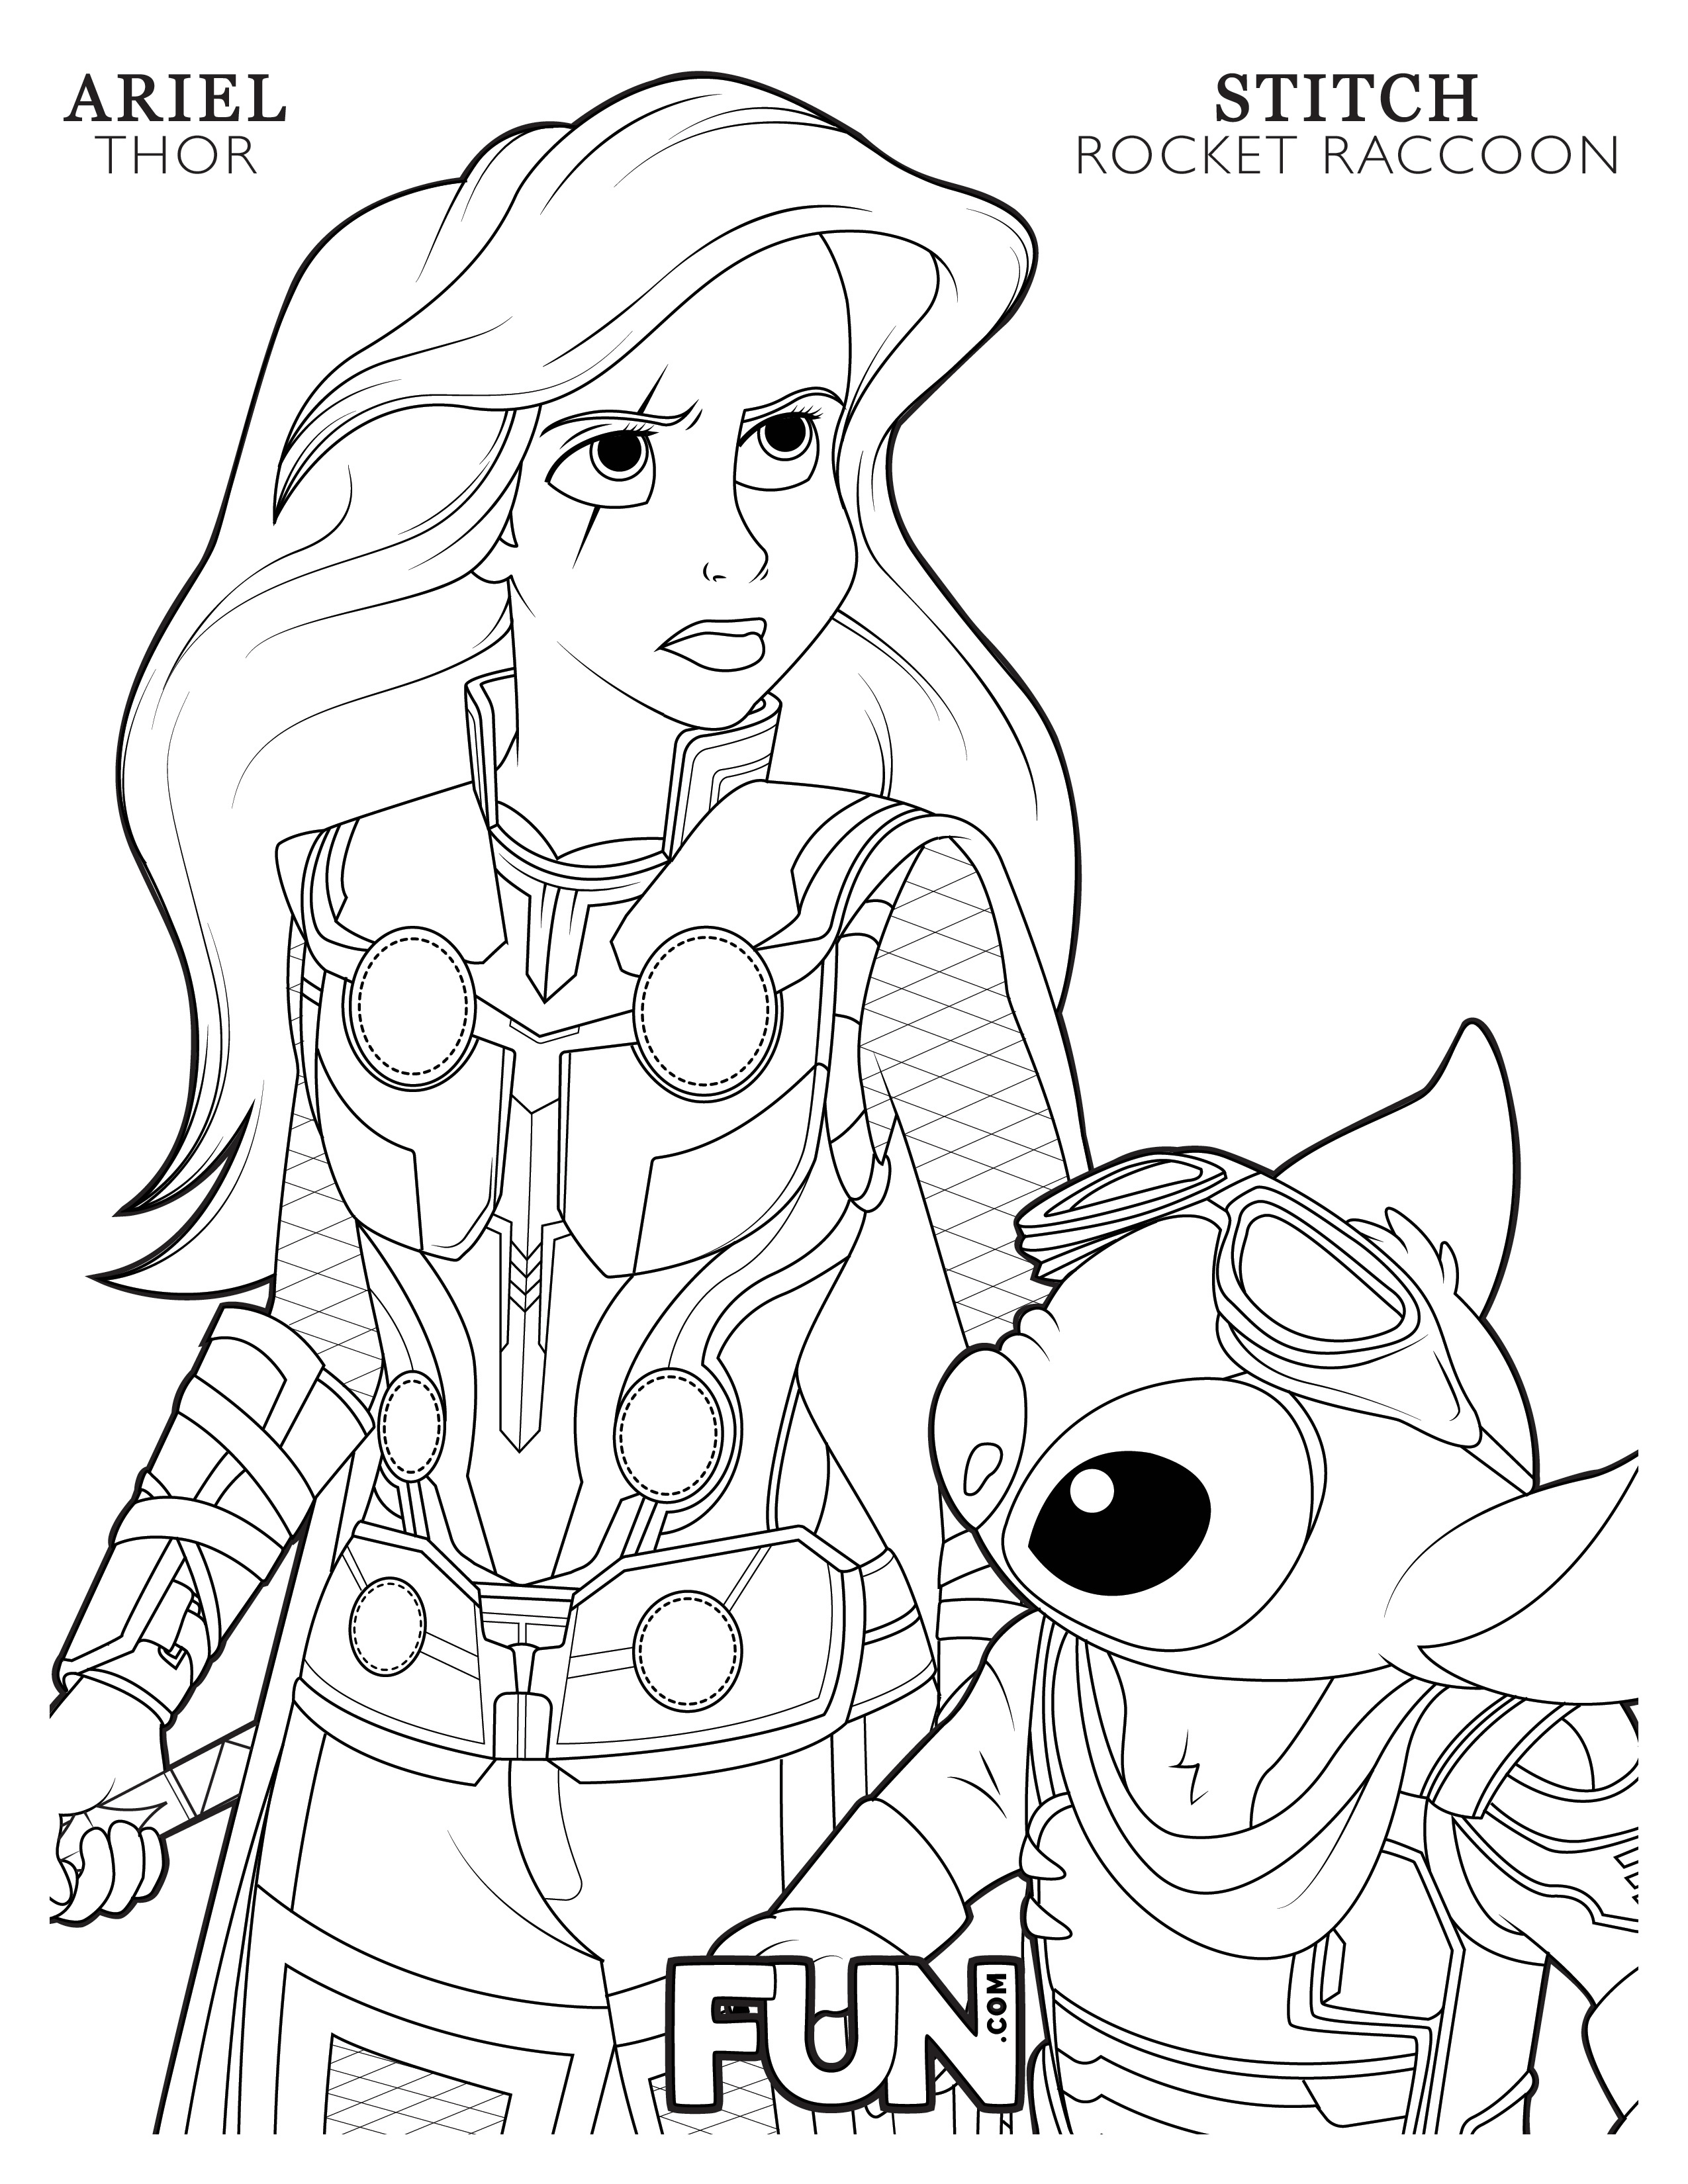 Feel the Magic With These Mashup Disney Coloring Pages